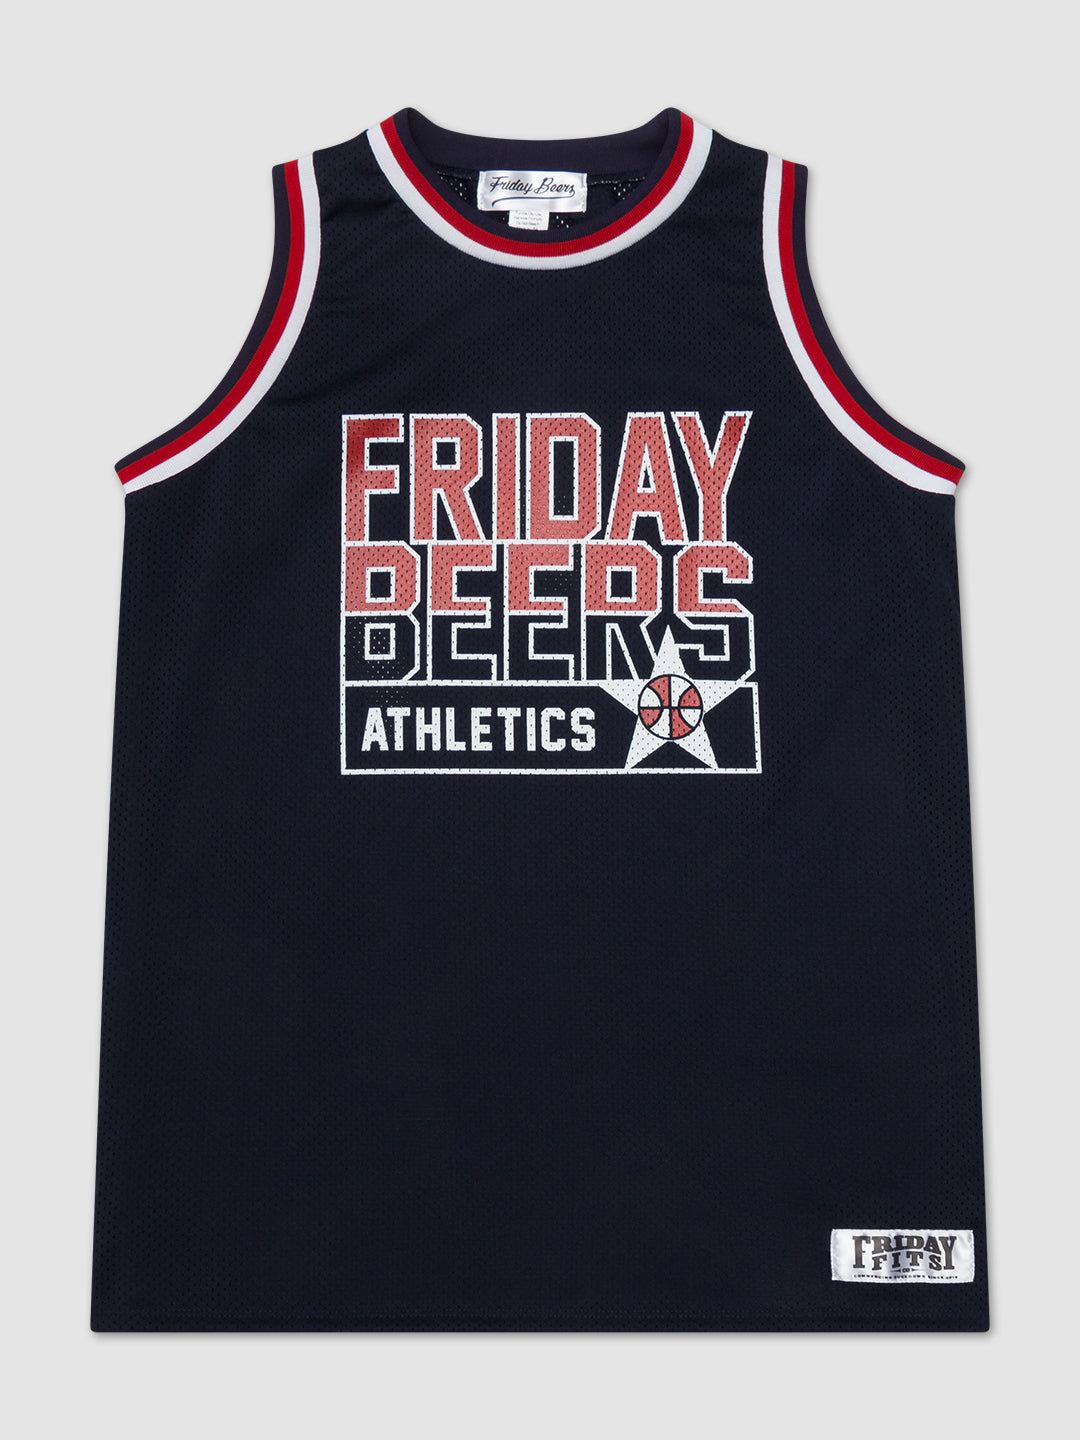 Friday Beers Dream Team Jersey